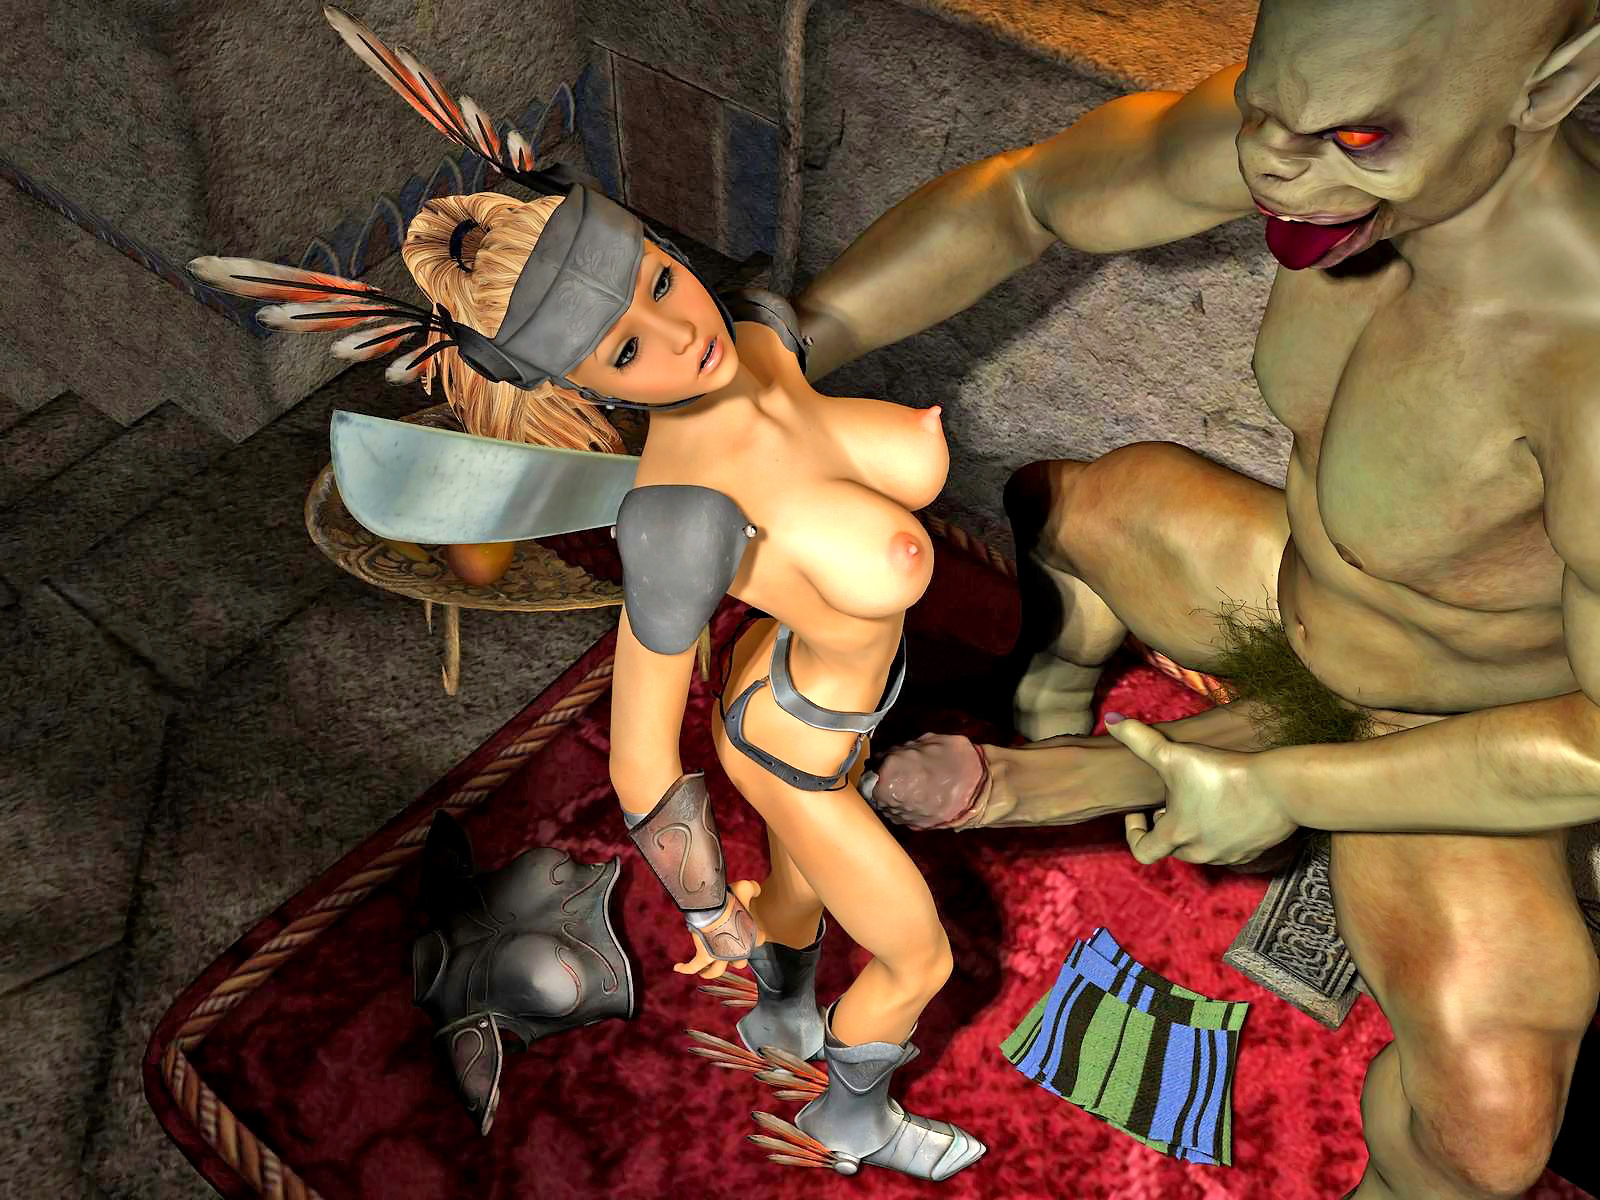 3d demons fucking girls hd videos download  porno picture